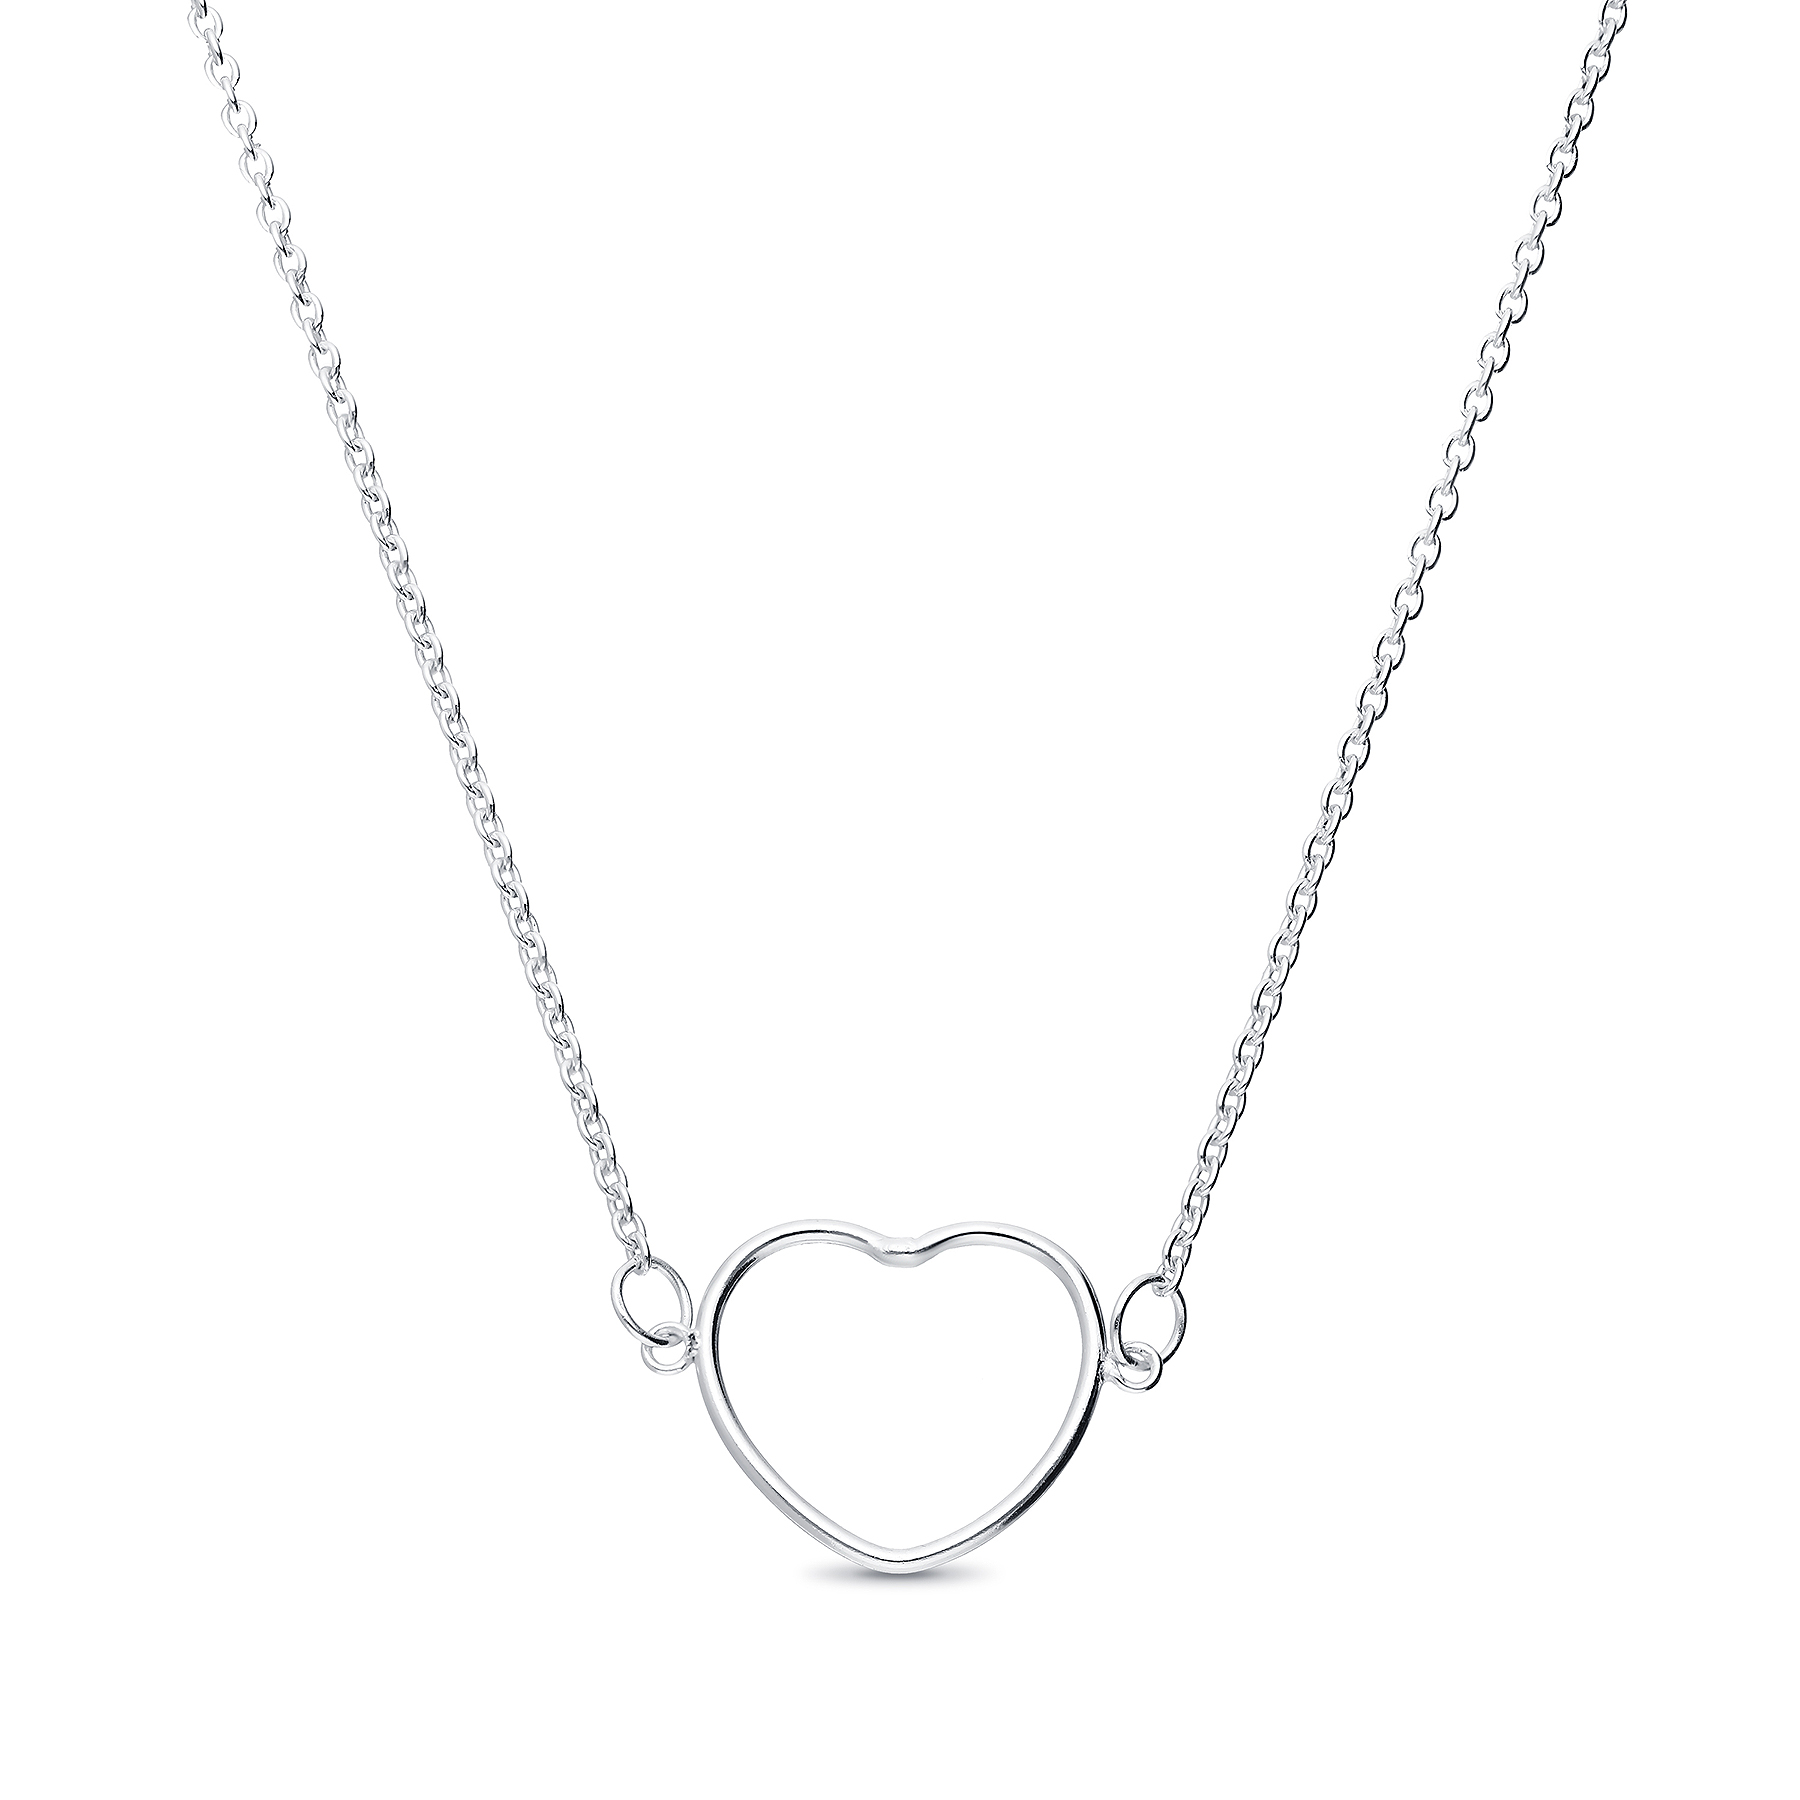 706-26198 - 925 Sterling Silver Heart Choker Necklace